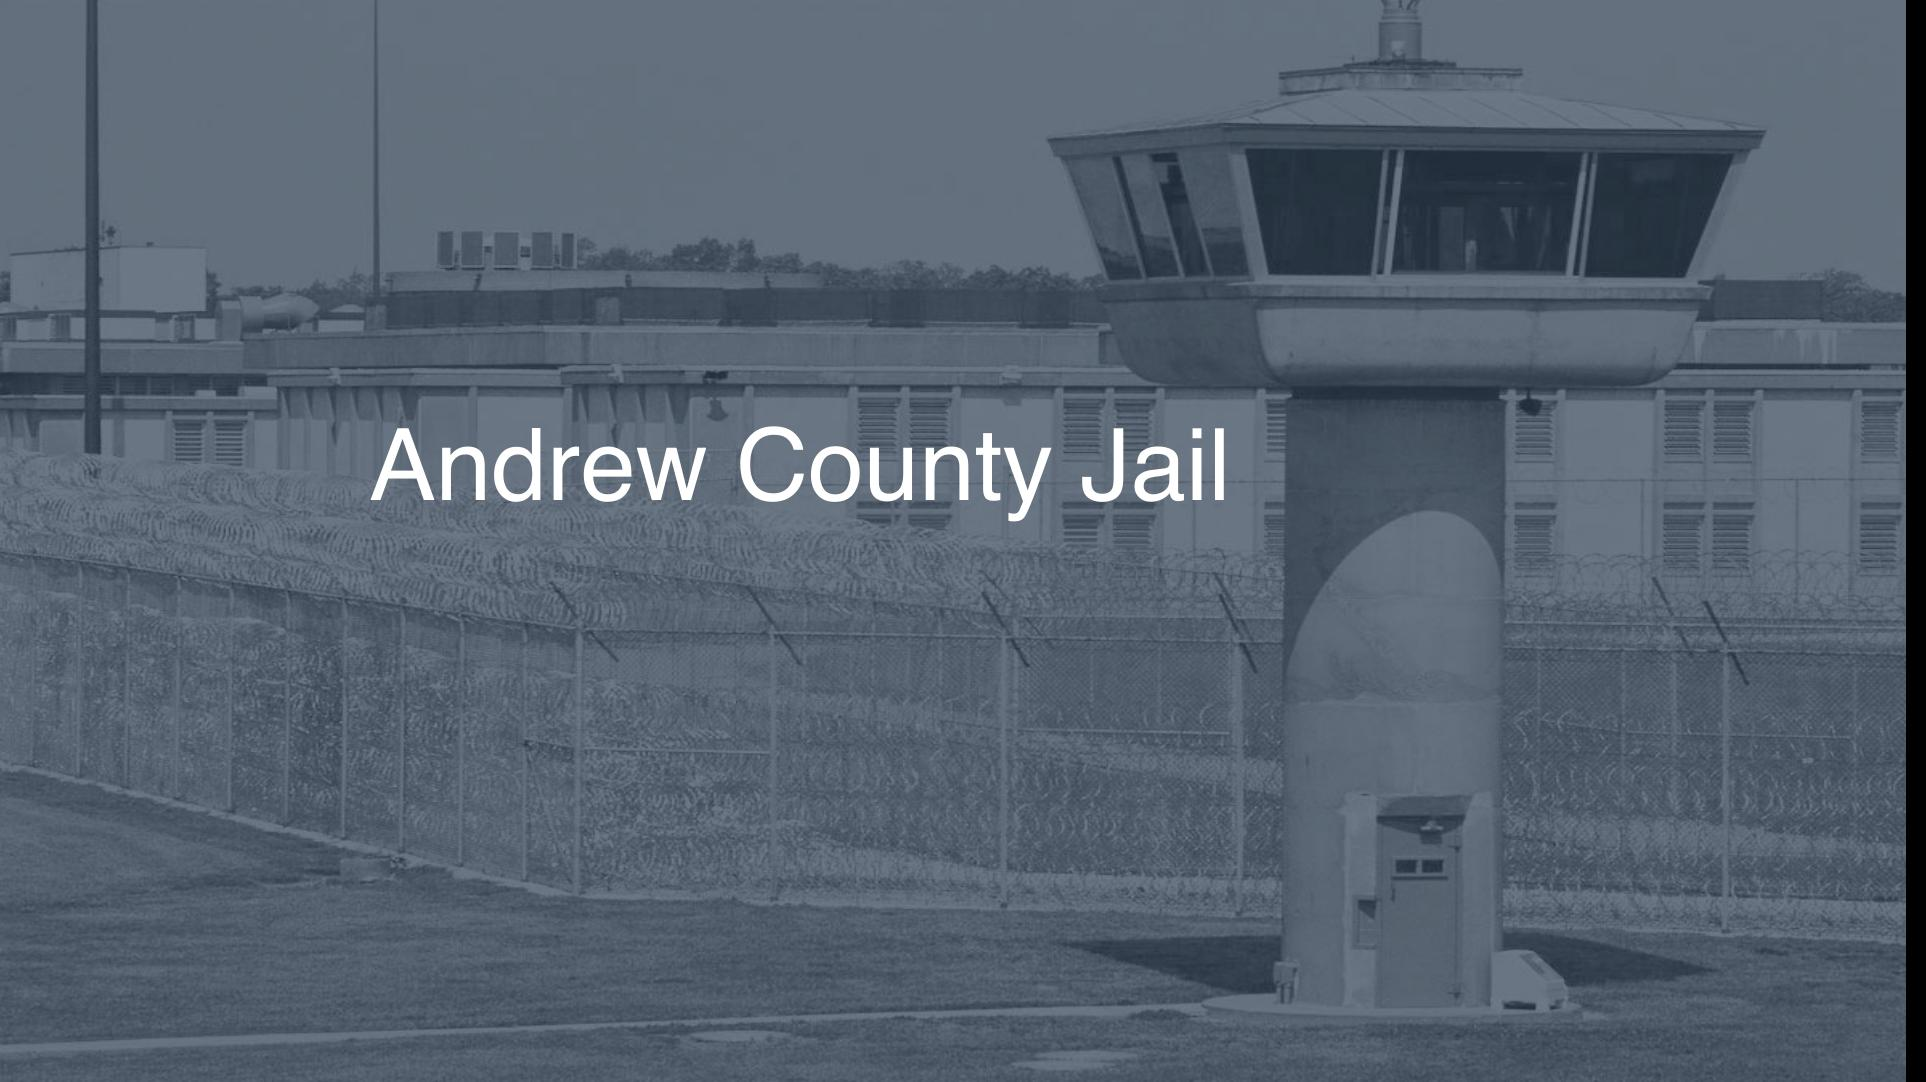 Andrew County Jail correctional facility picture